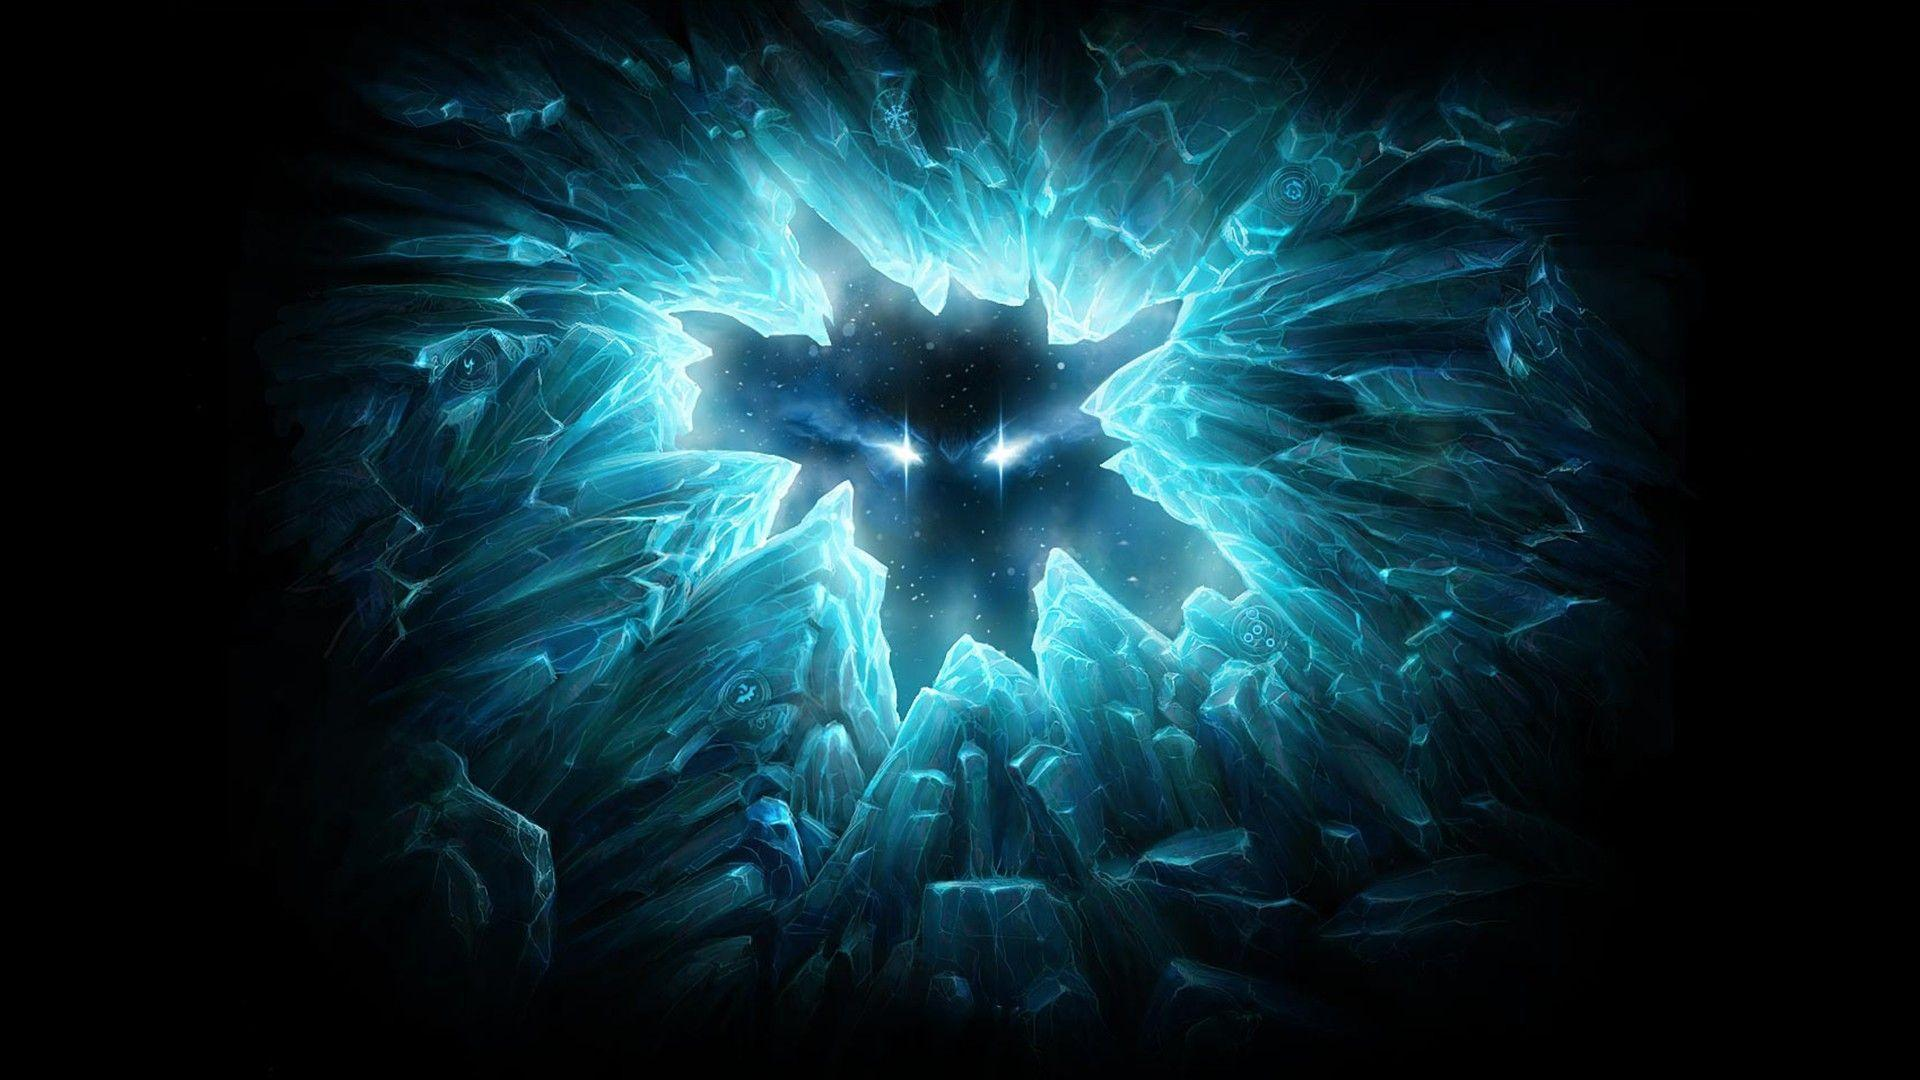 World of Warcraft - Wrath of the Lich King wallpaper #